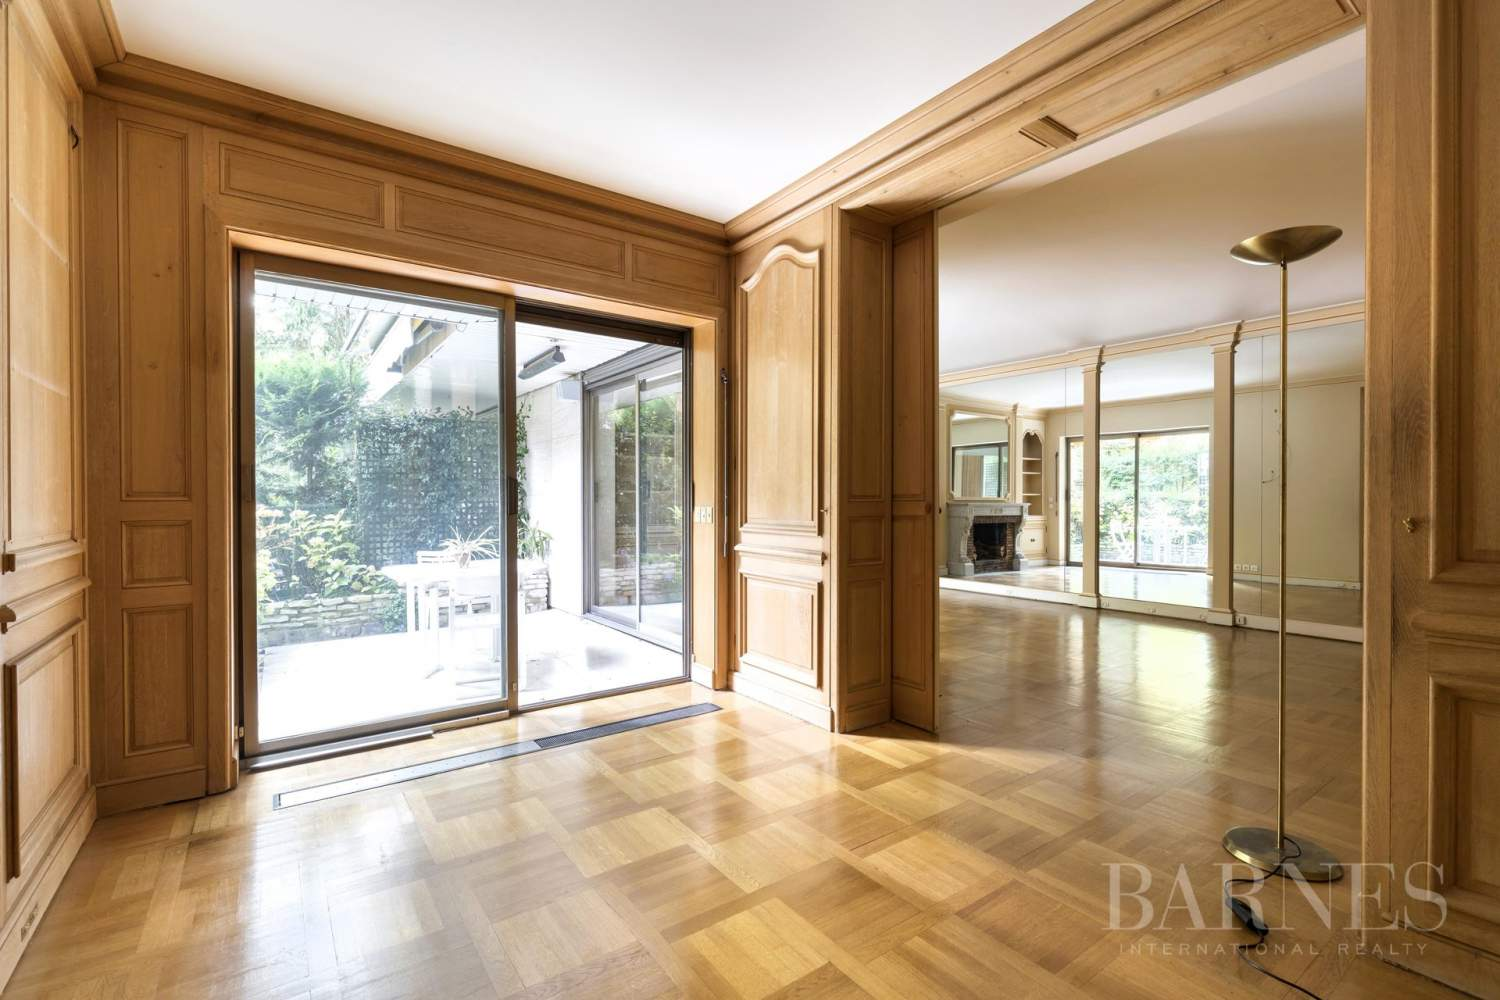 NEUILLY - CHATEAU - JARDIN et TERRASSE - 2/3 CHAMBRES - PARKING picture 3